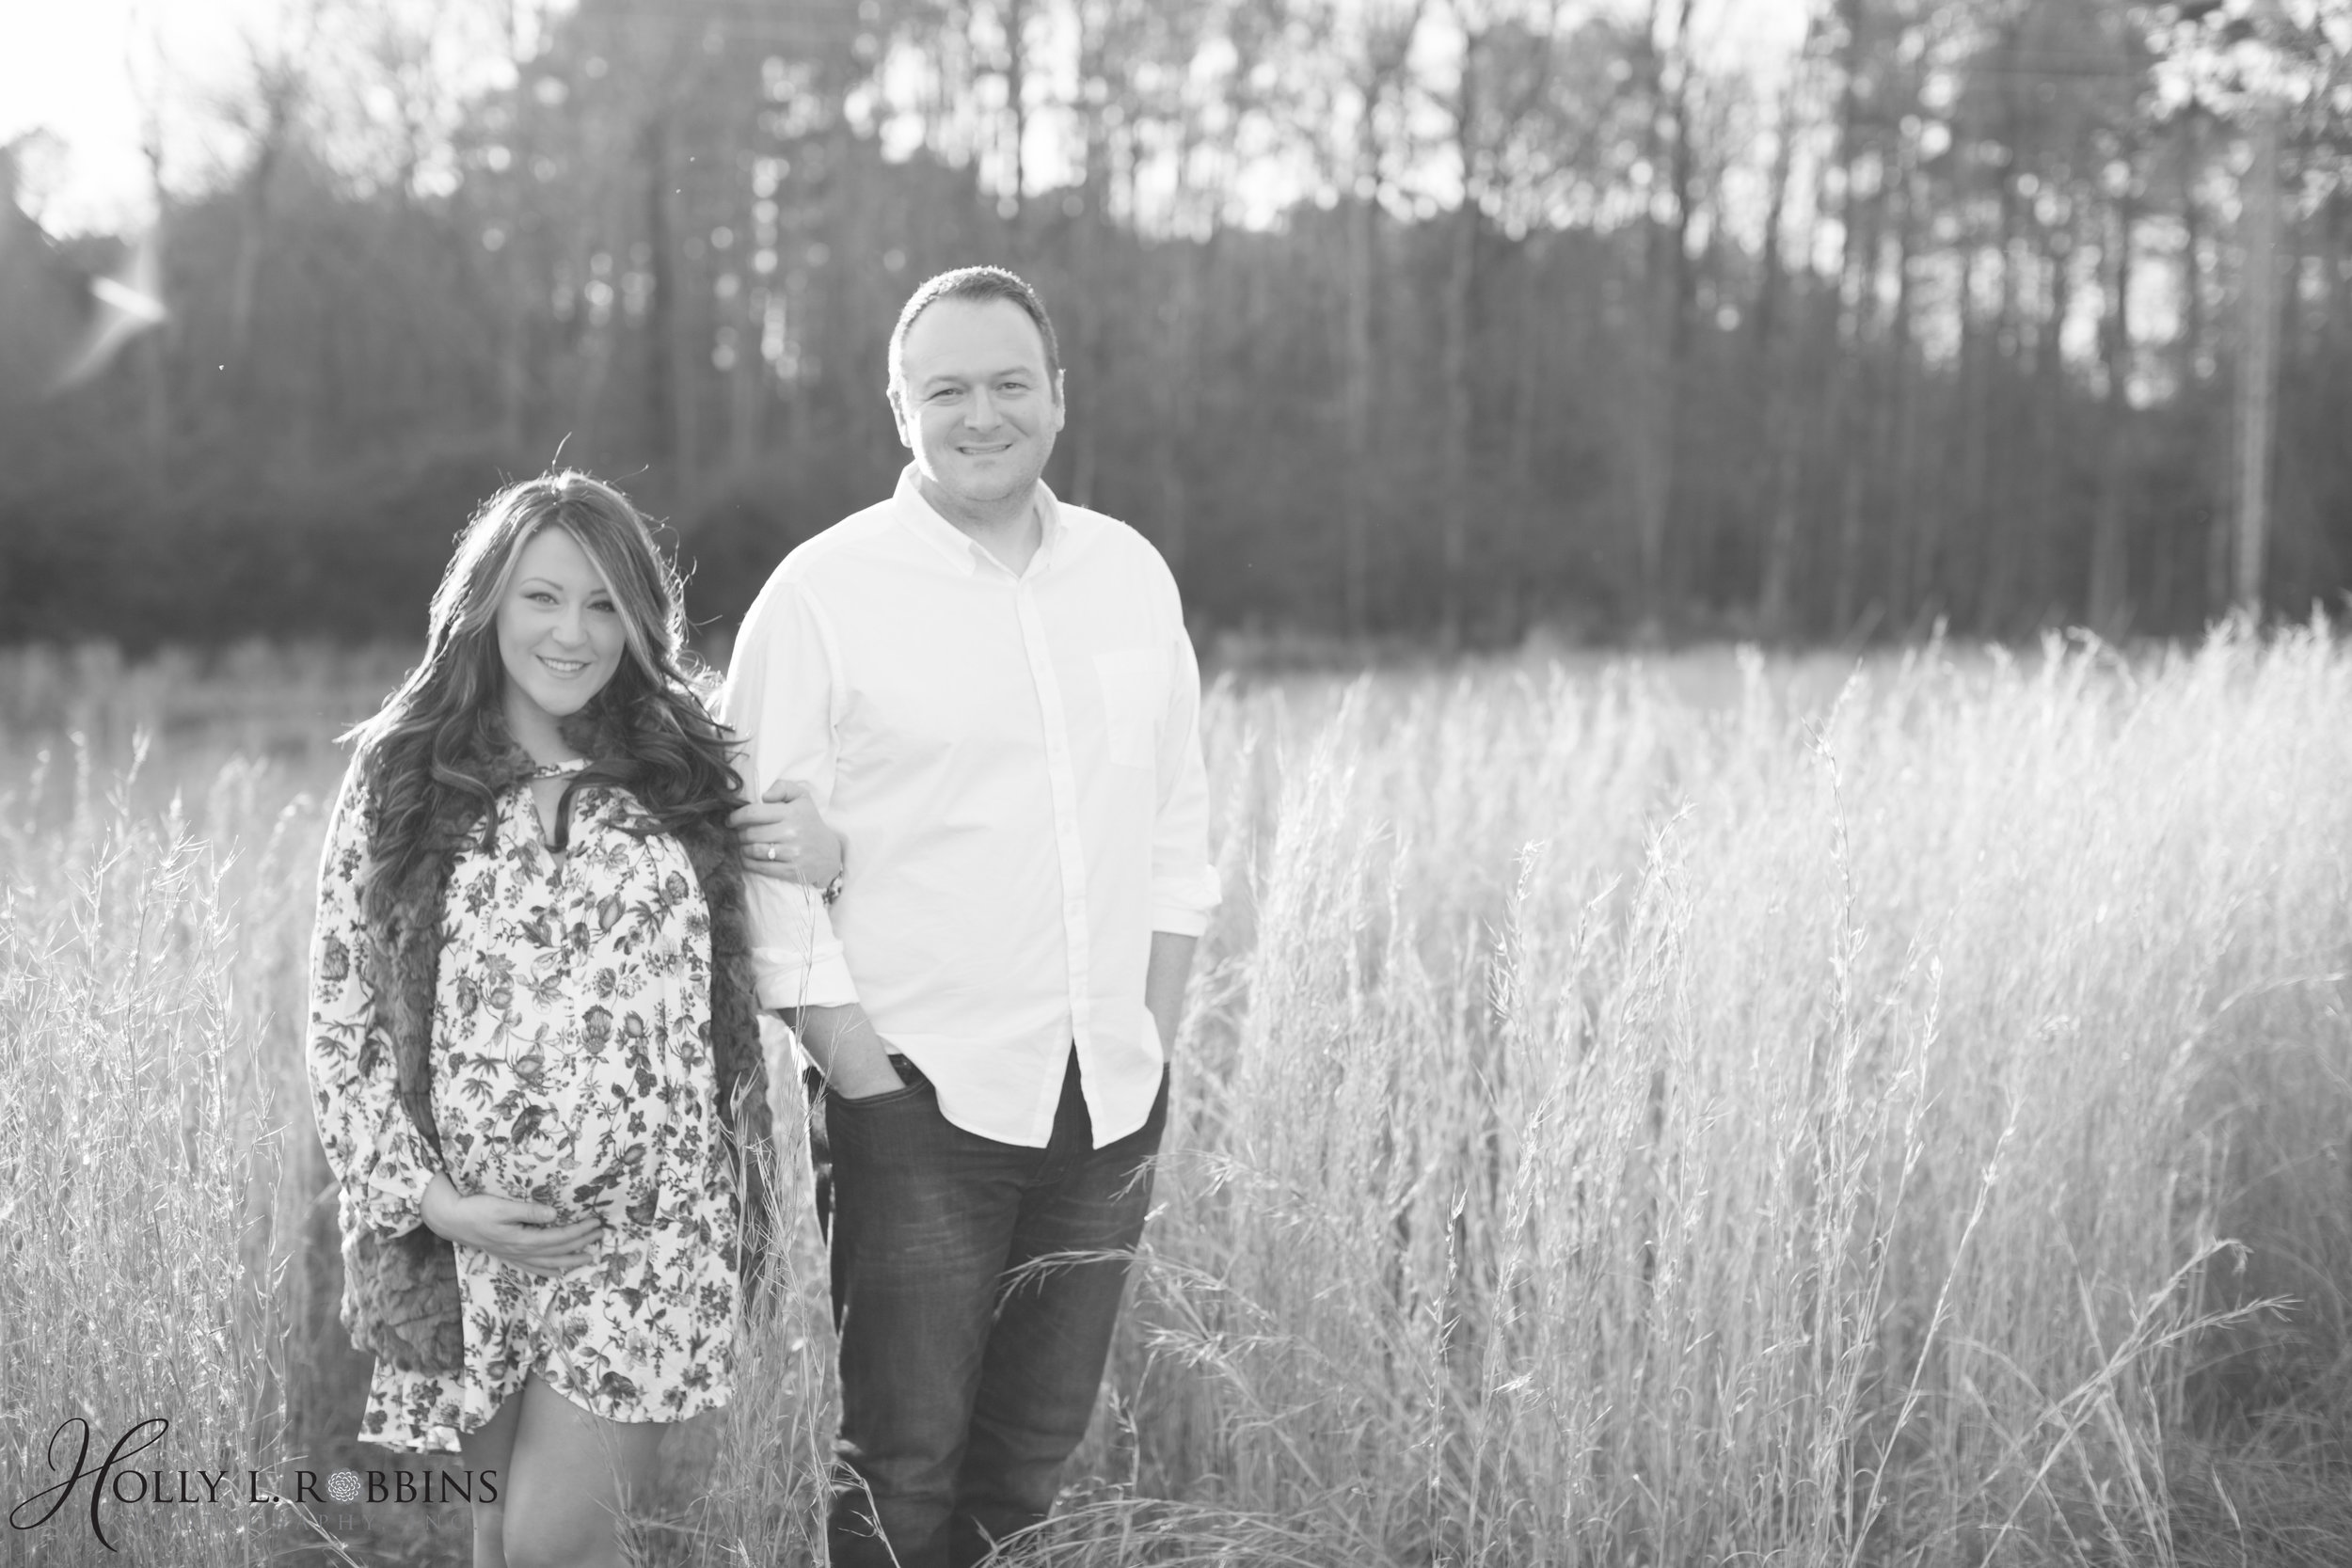 Social_Circle_Ga_Maternity_Photographers_Holly_L_Robbins-7